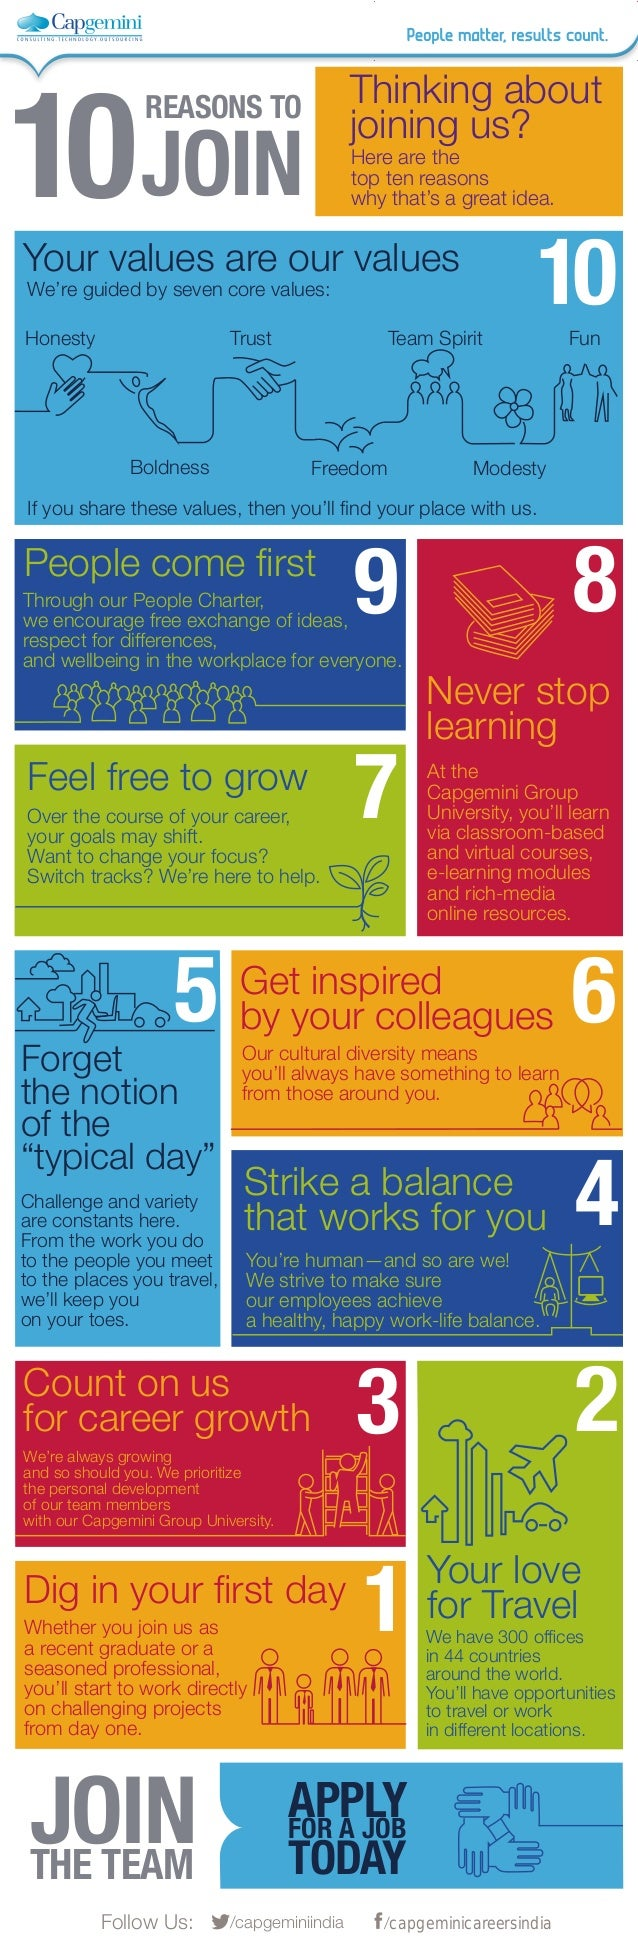 10 JOIN  Thinking about joining us?  REASONS TO  Here are the top ten reasons why that's a great idea.  Your values are ou...